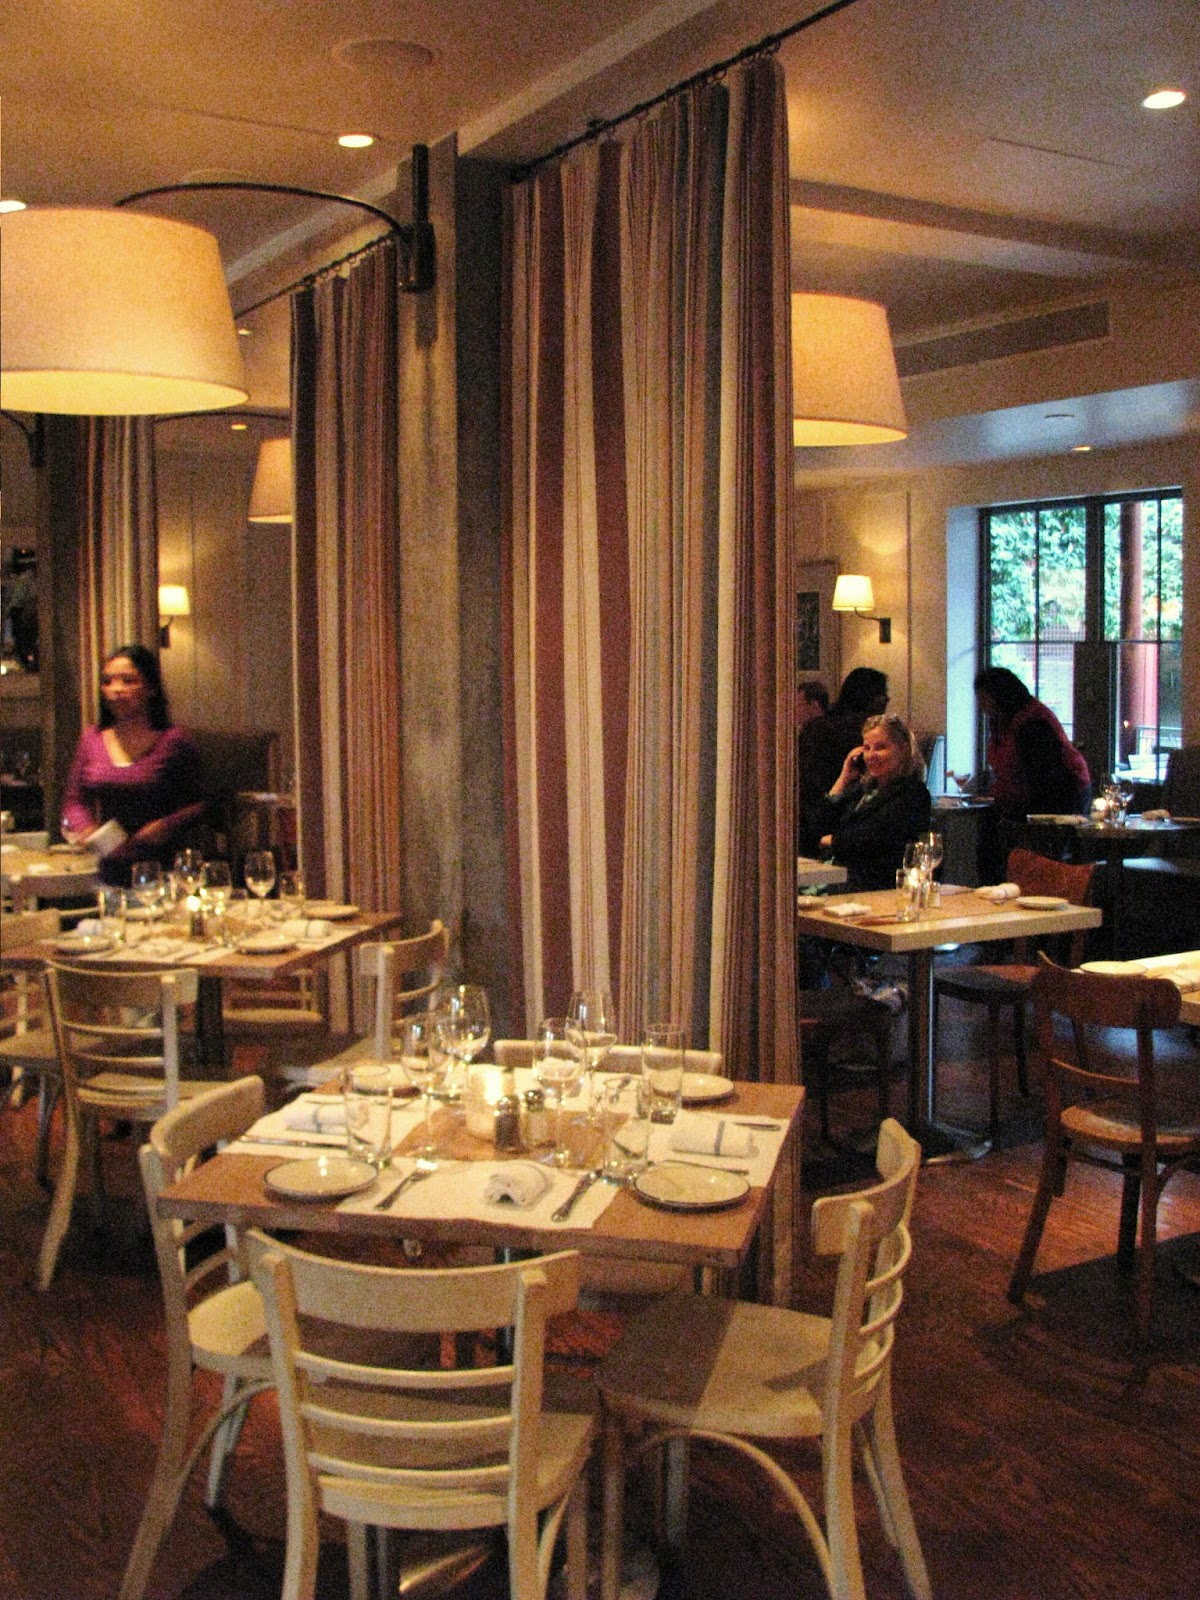 i love the modern farmhouse decor especially the brown ticking stripe curtains that divide the restaurant